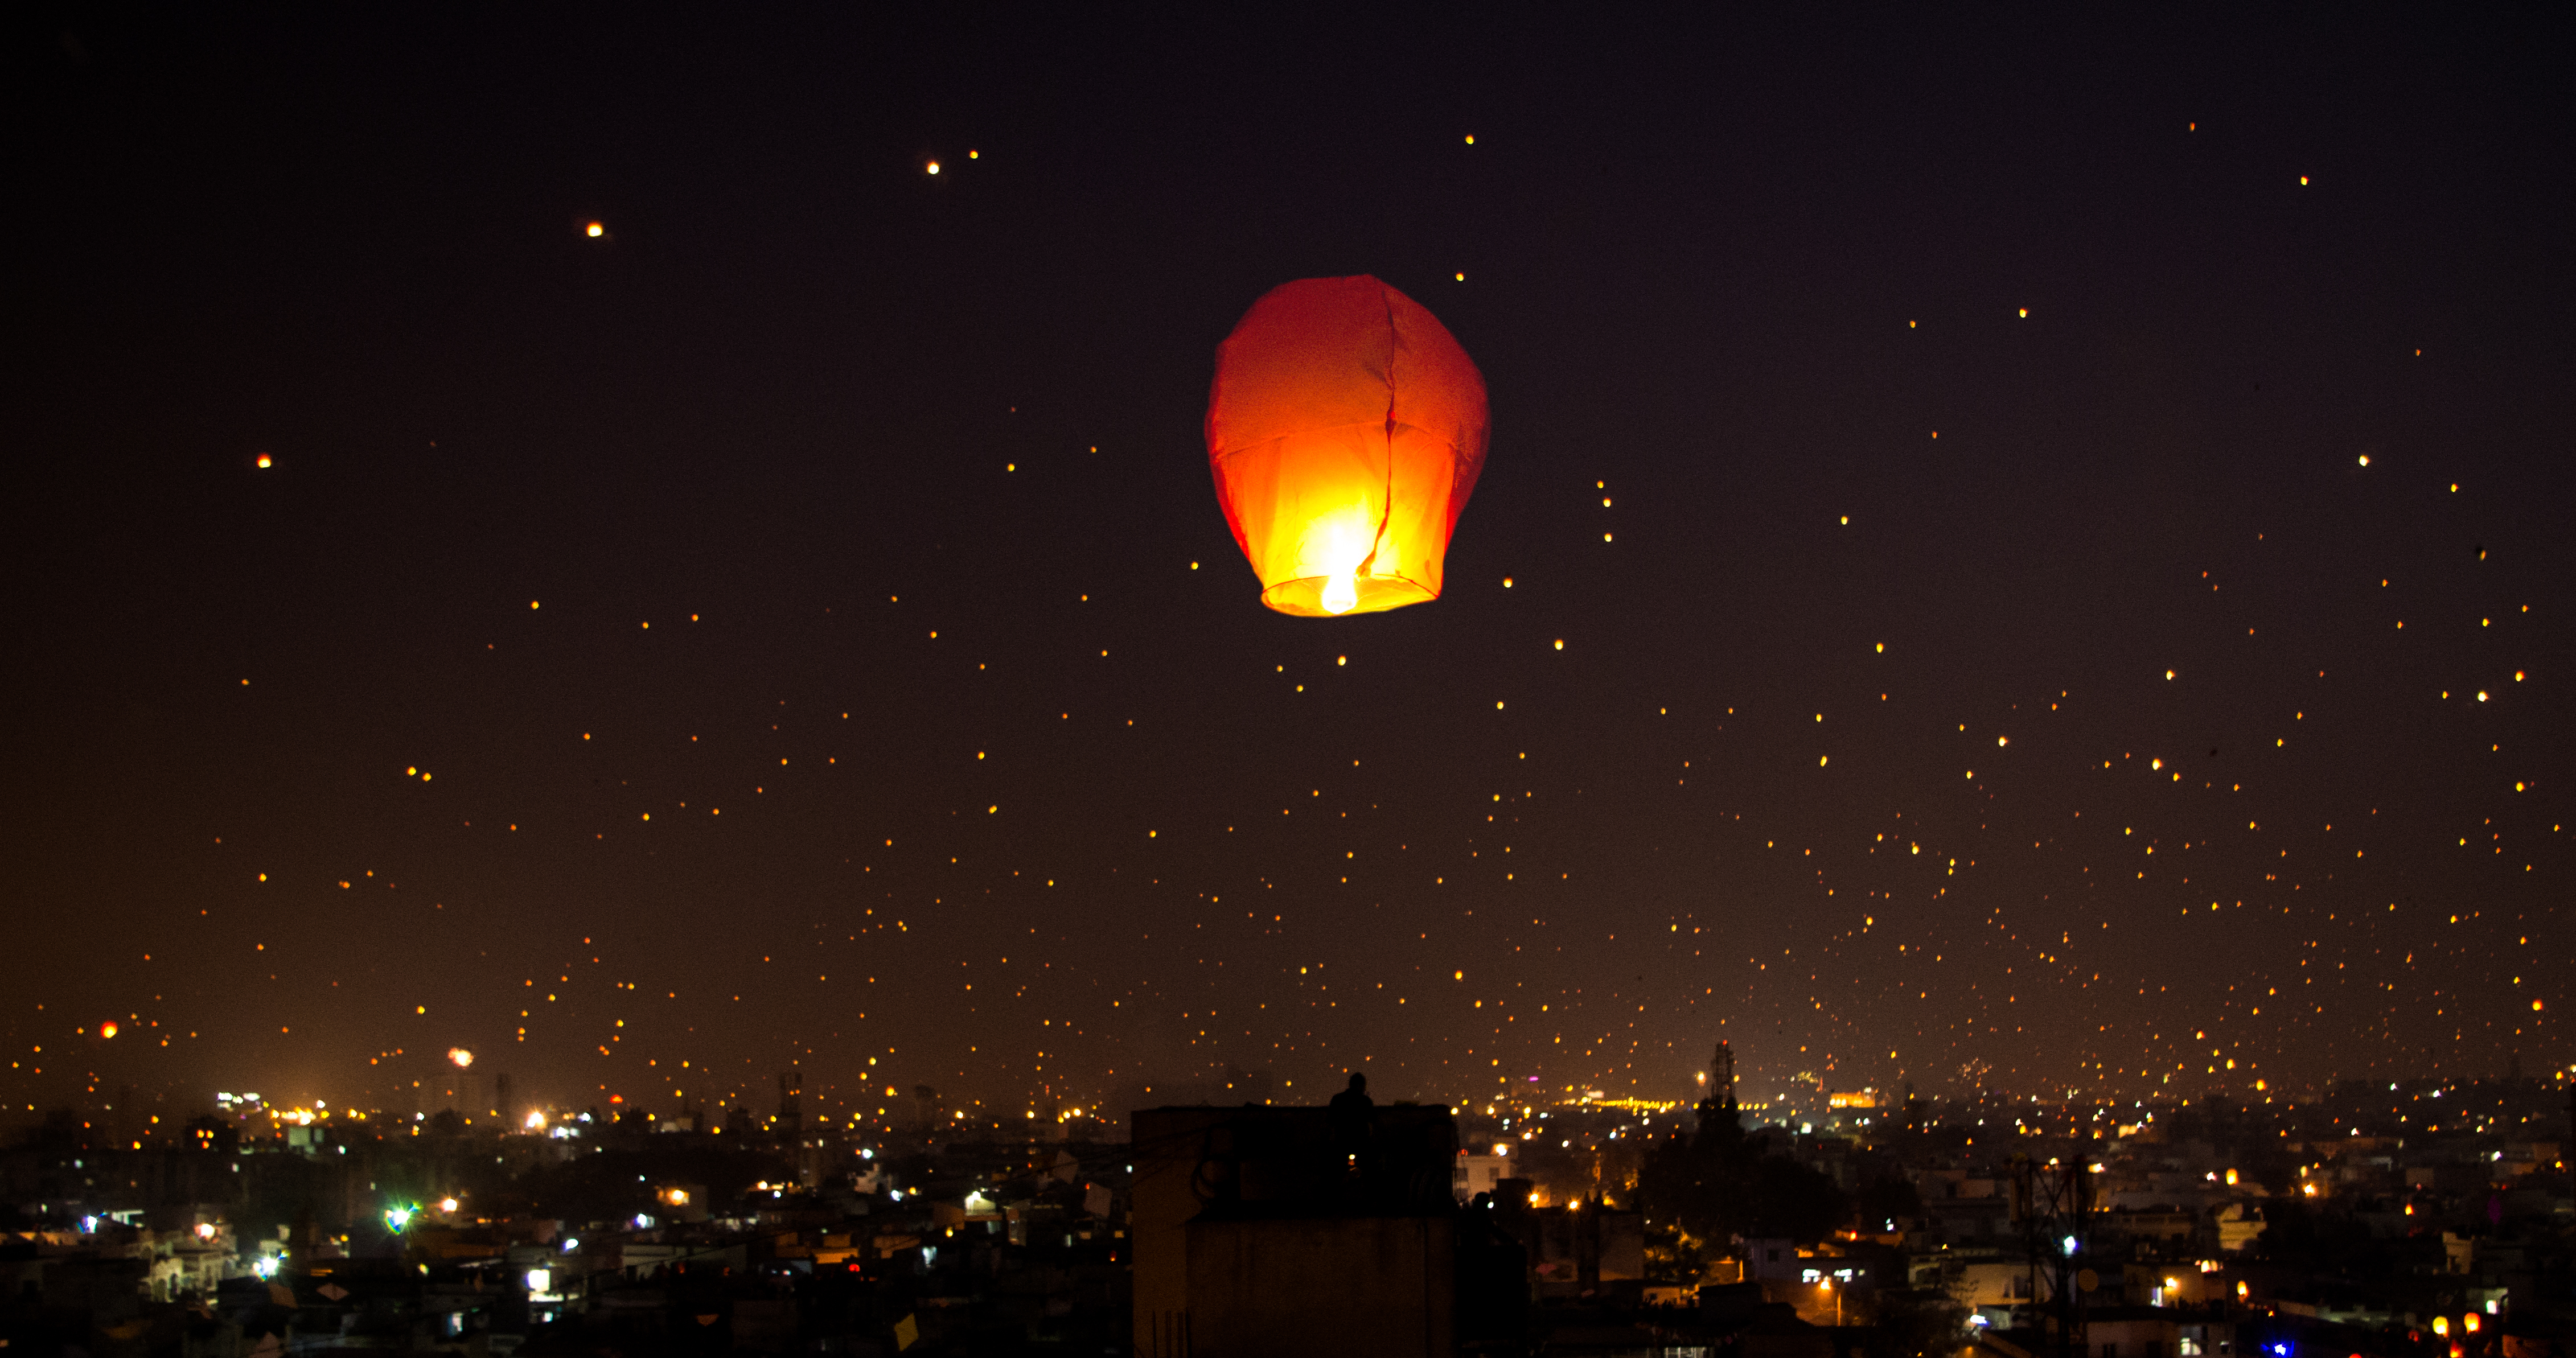 FileA night lit up on Makar Sankranti Uttarayana Festival with Kites and Lights India & File:A night lit up on Makar Sankranti Uttarayana Festival with ...